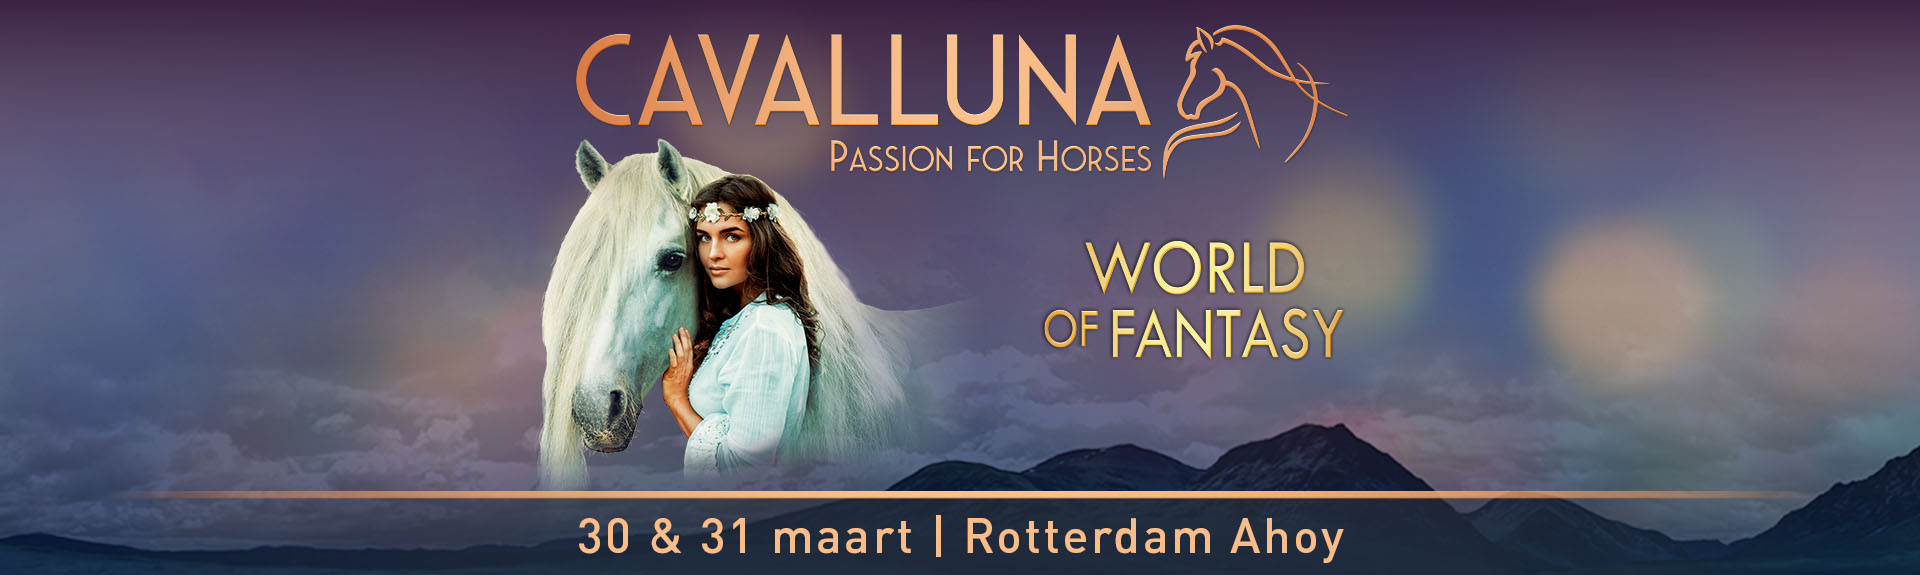 Cavalluna World of Fantasy